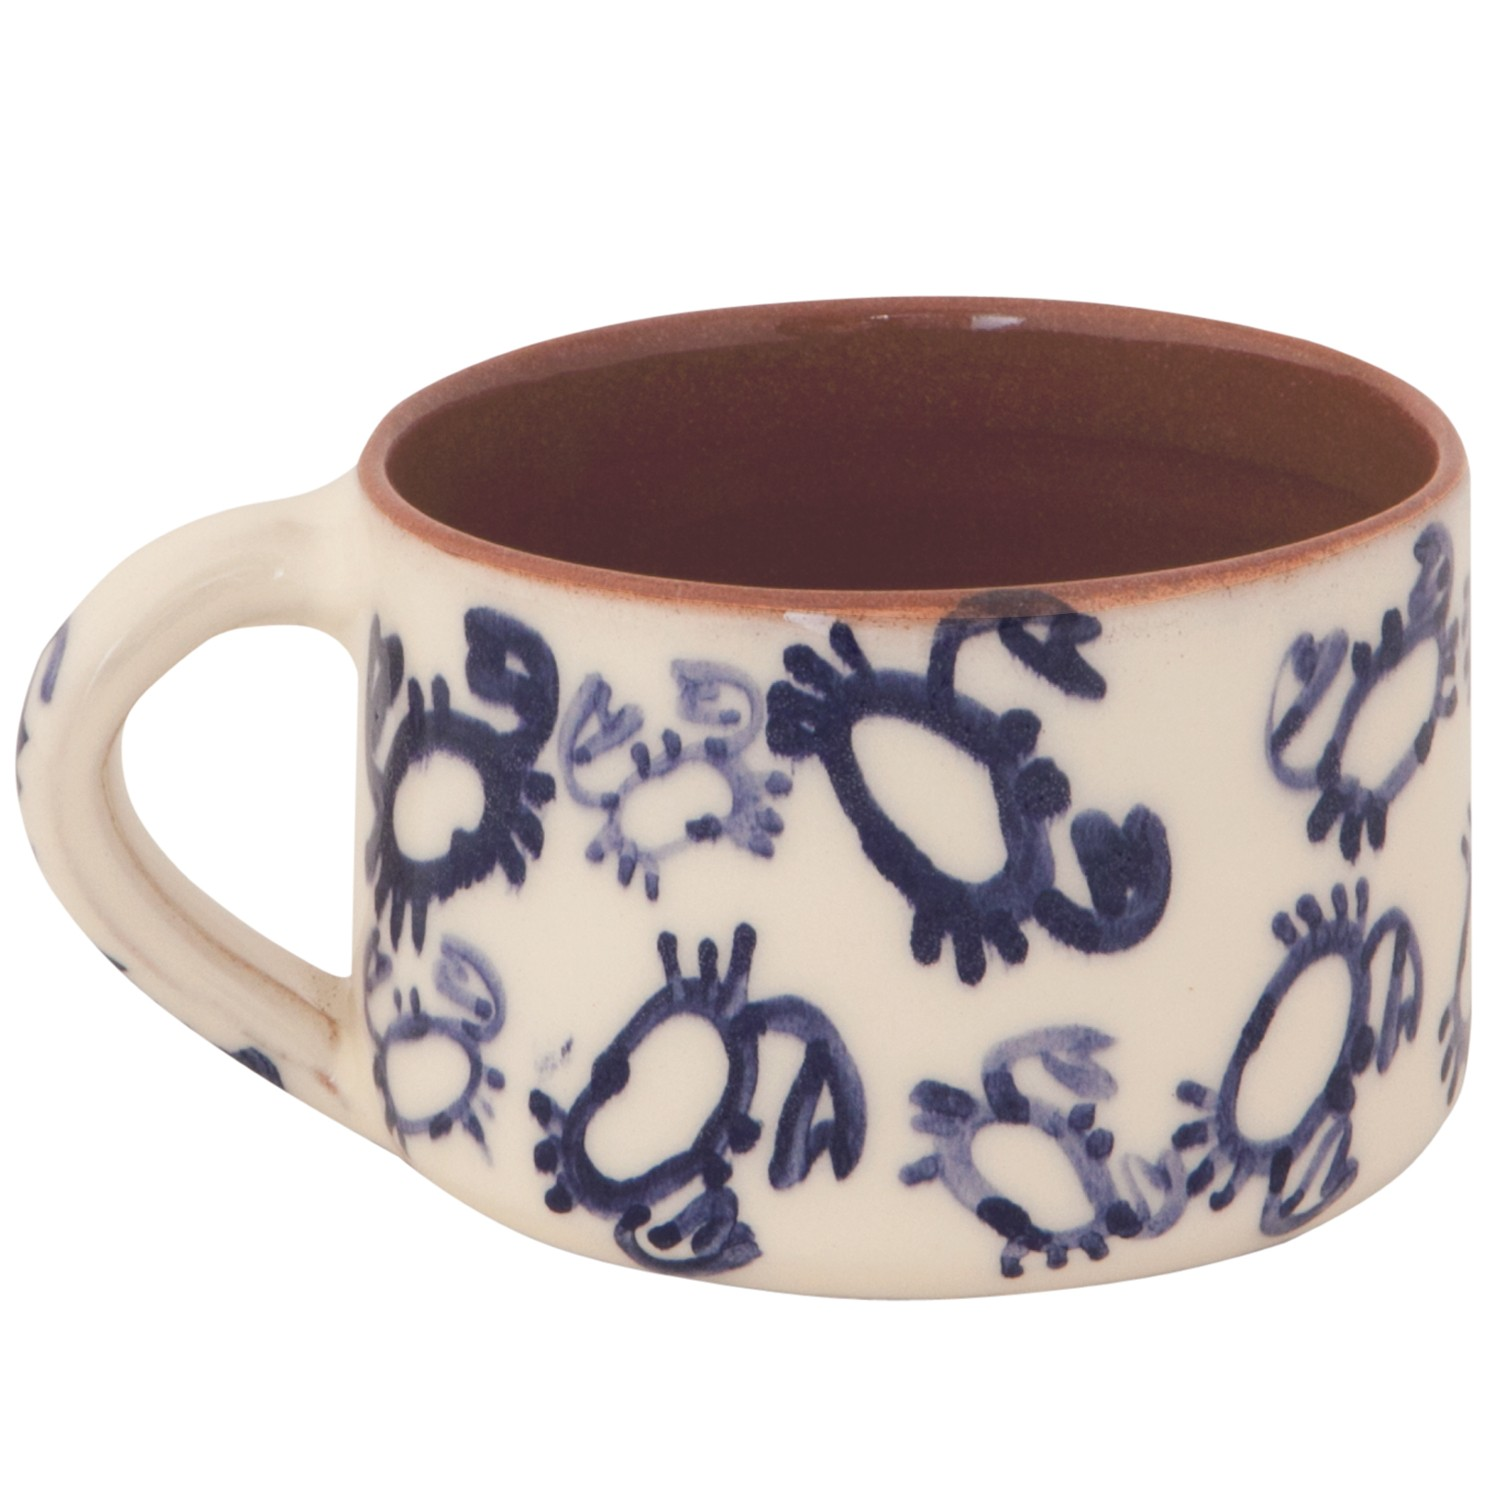 Handmade Ceramic Mugs for Sale - Blue Crab Nautical Theme-1